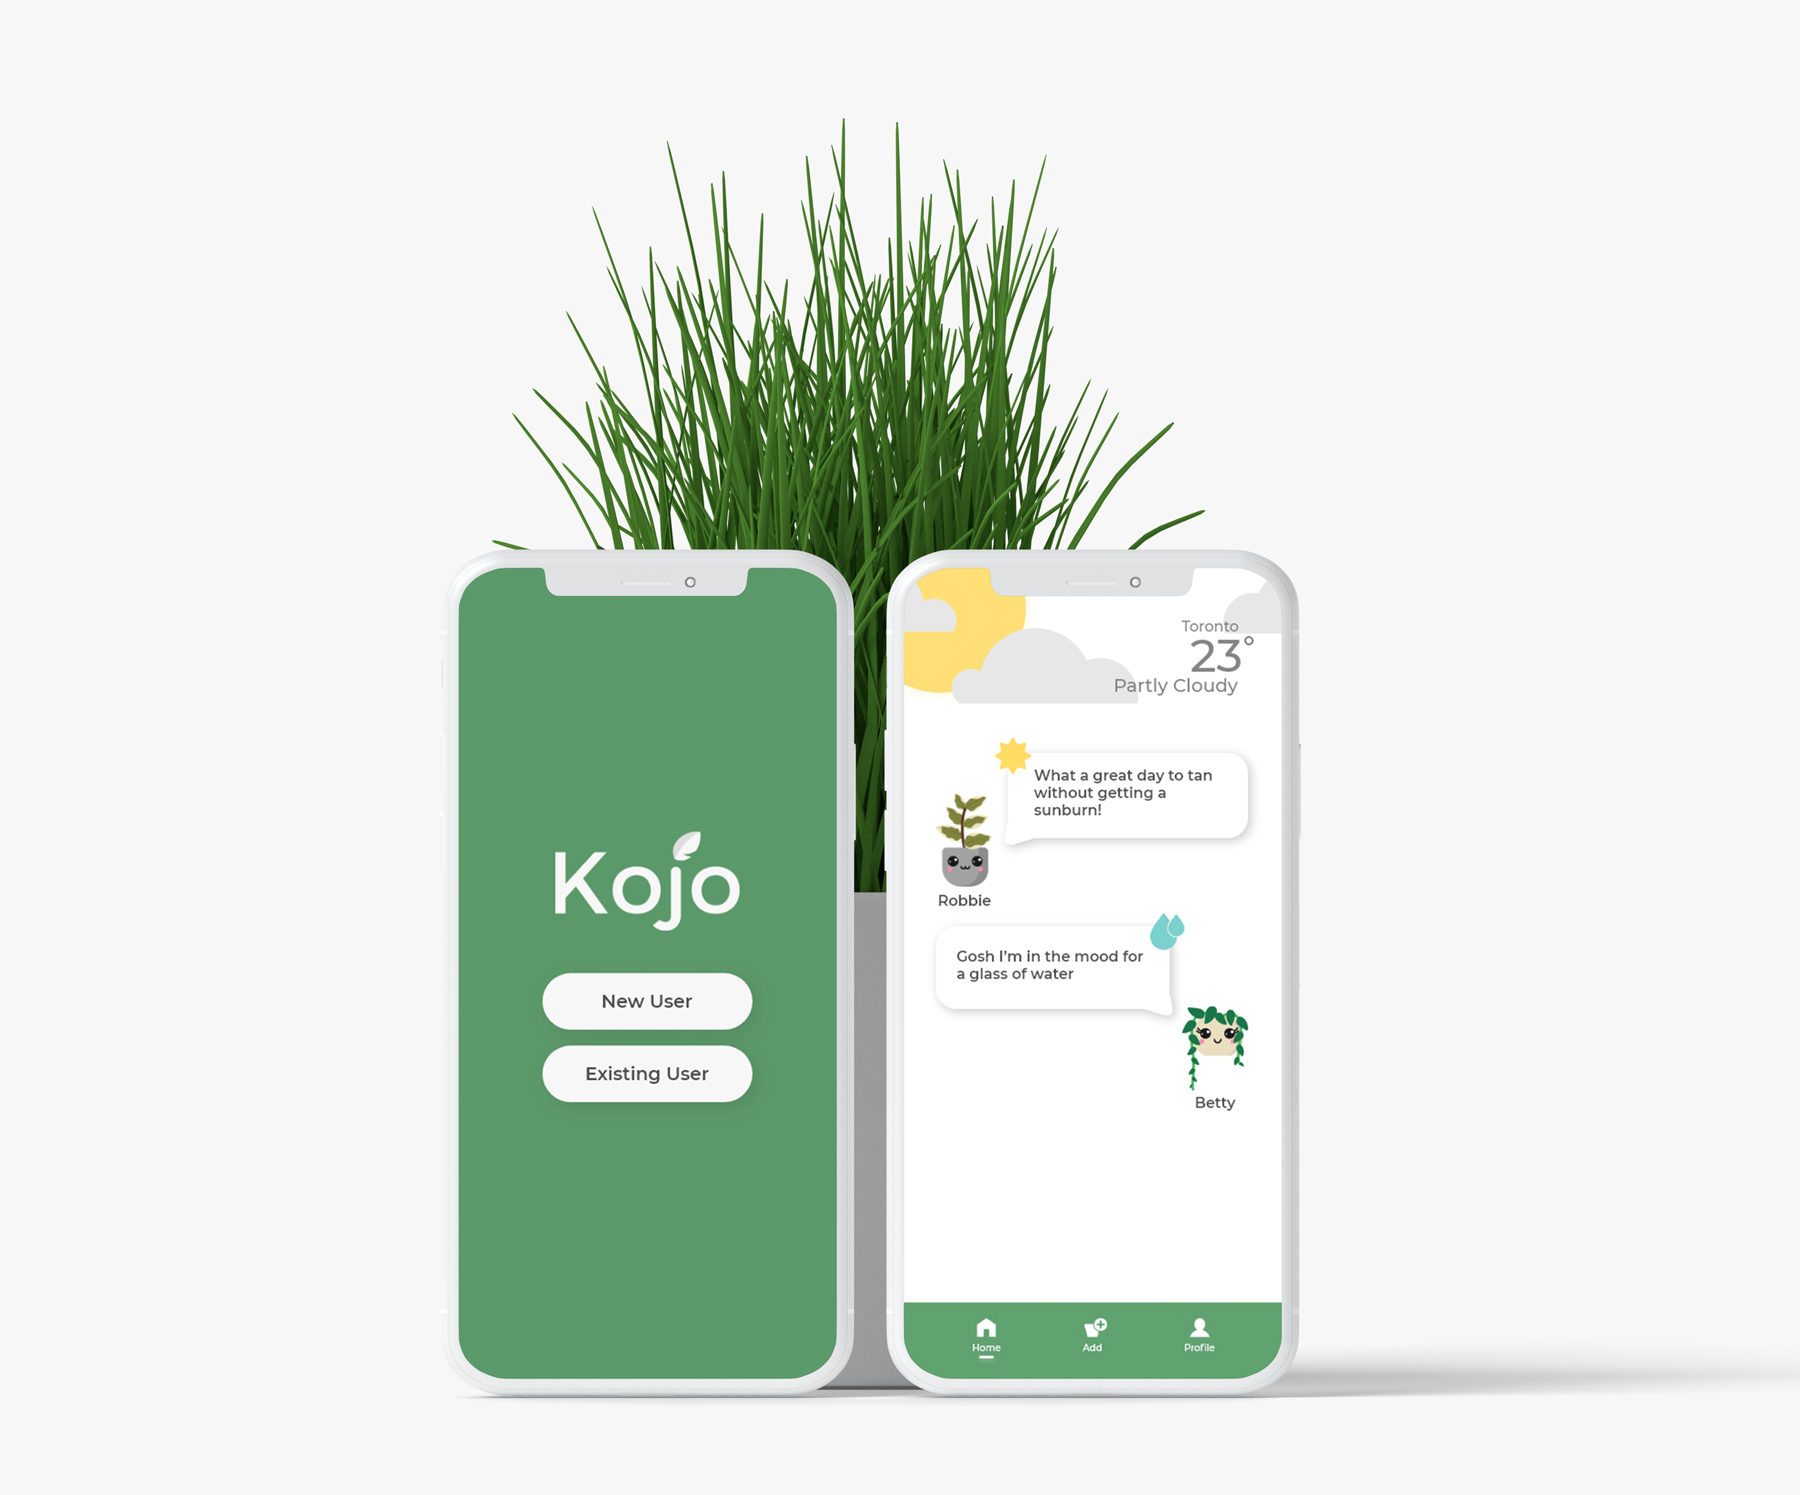 Kojo - Make your plants your friends